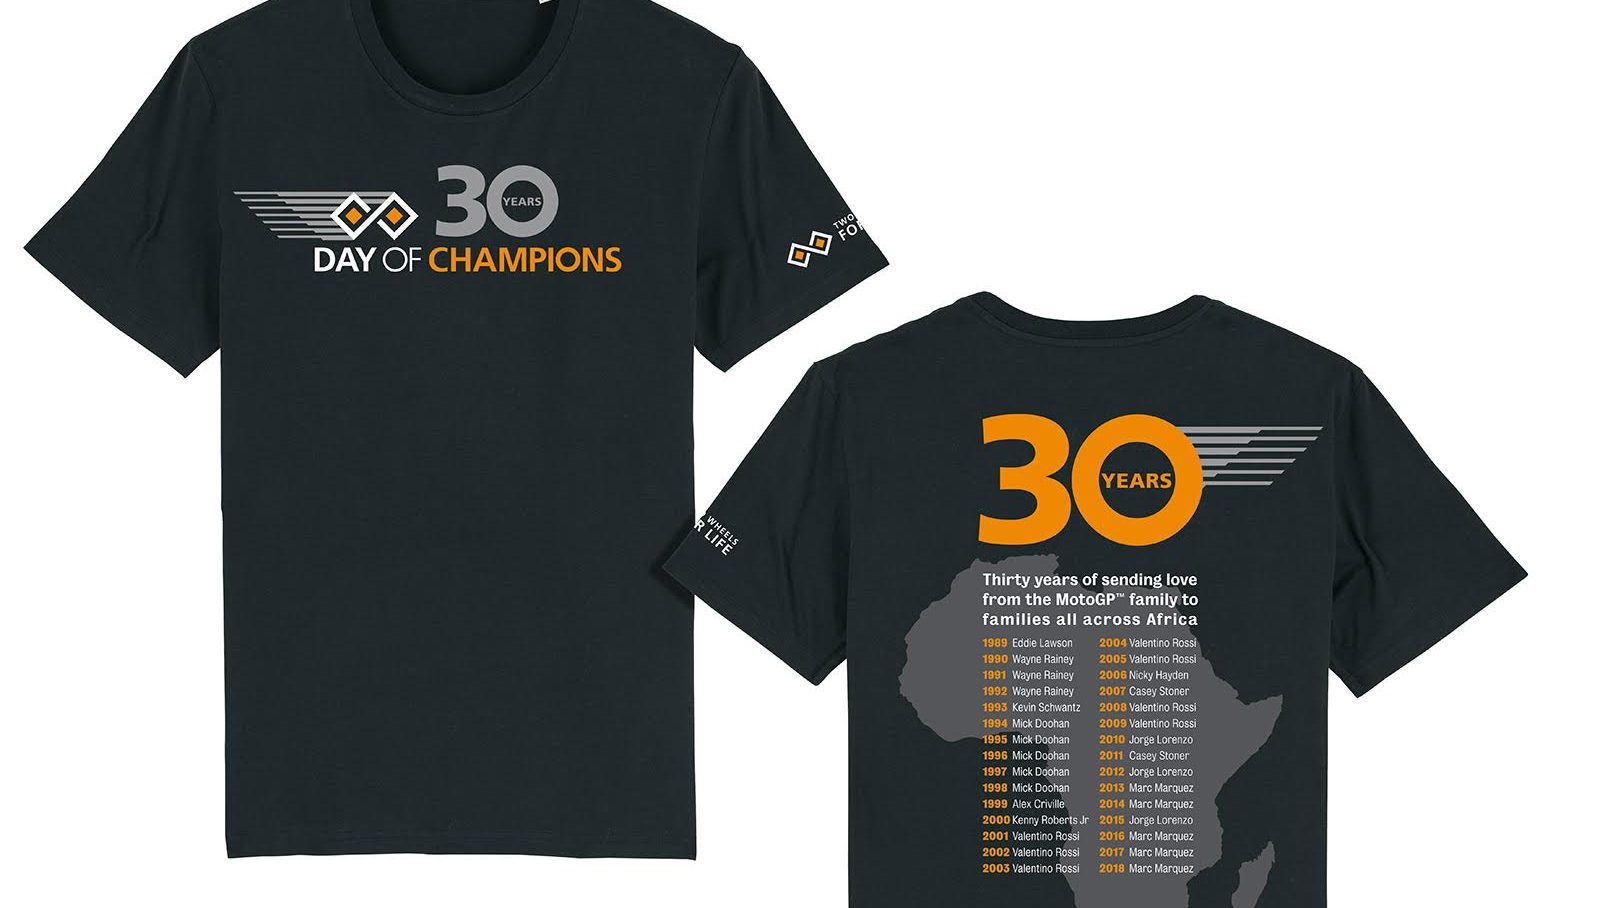 Limited edition tees celebrate 30 years of Day of Champions